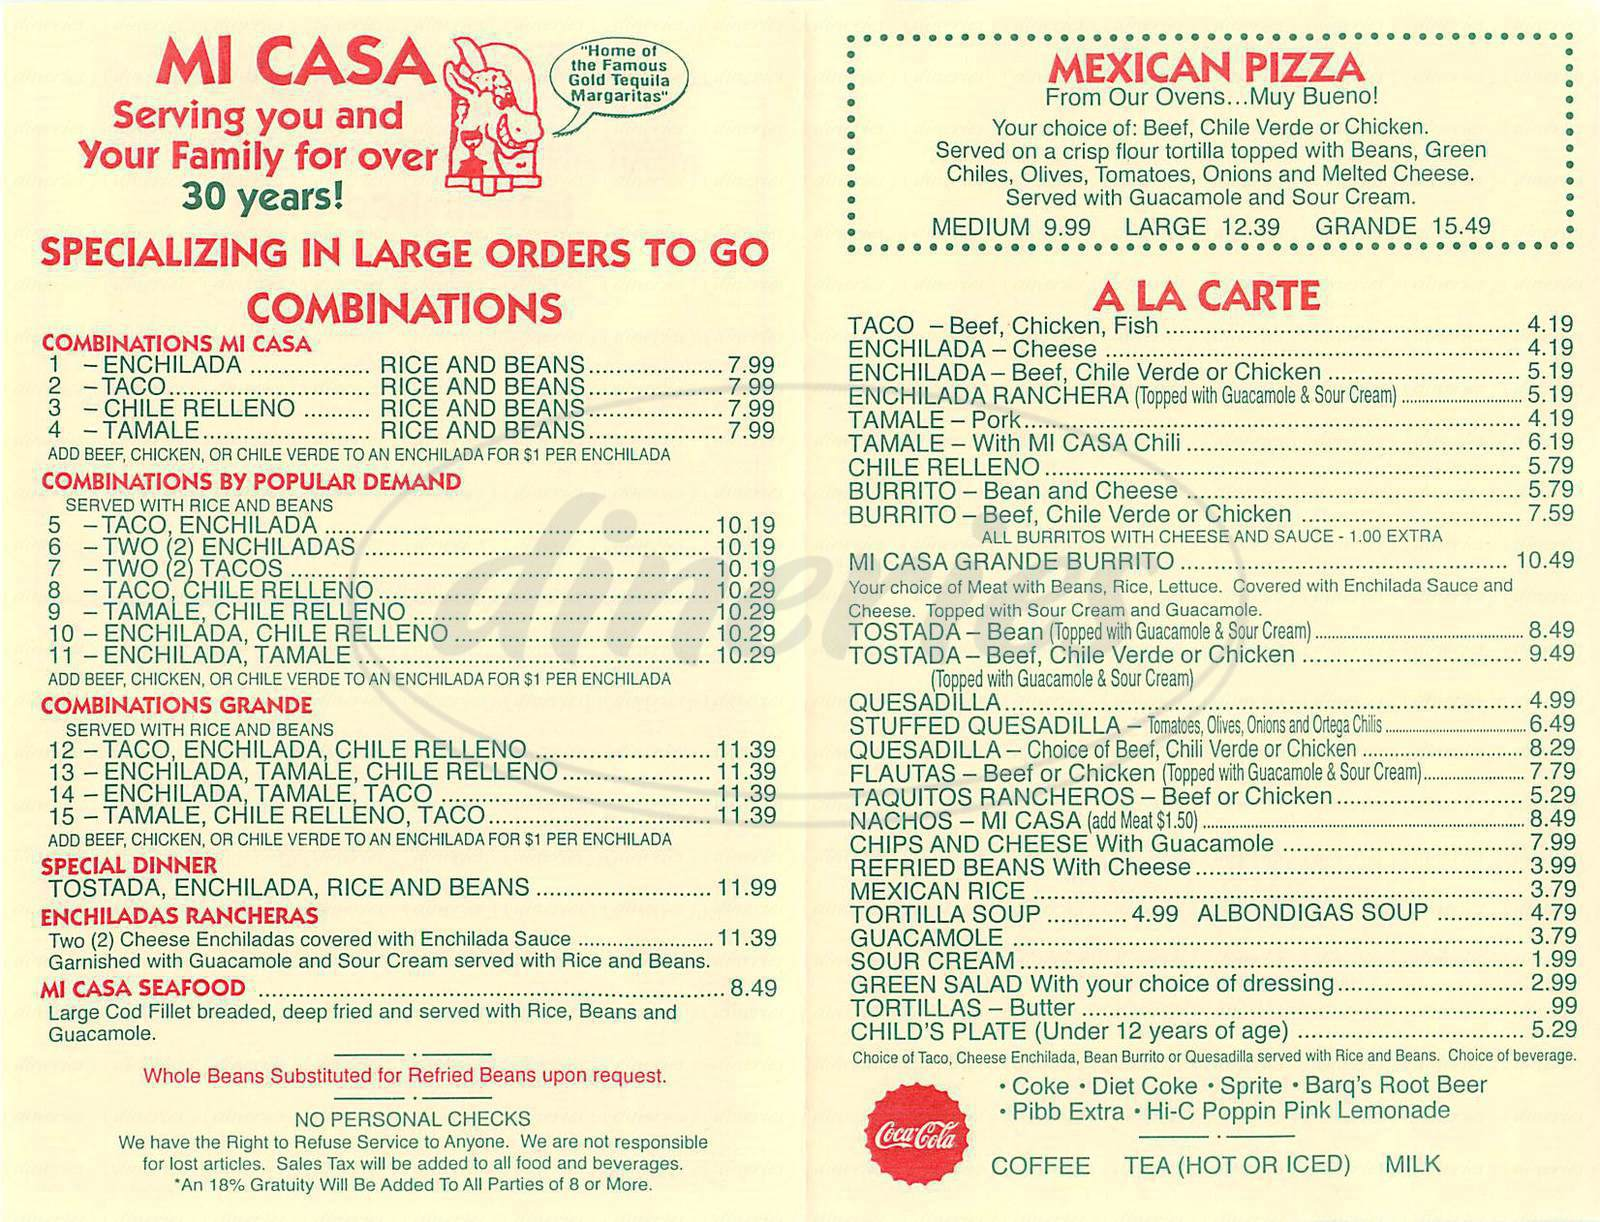 Mi Casa Mexican Restaurant Menu - Costa Mesa - Dineries